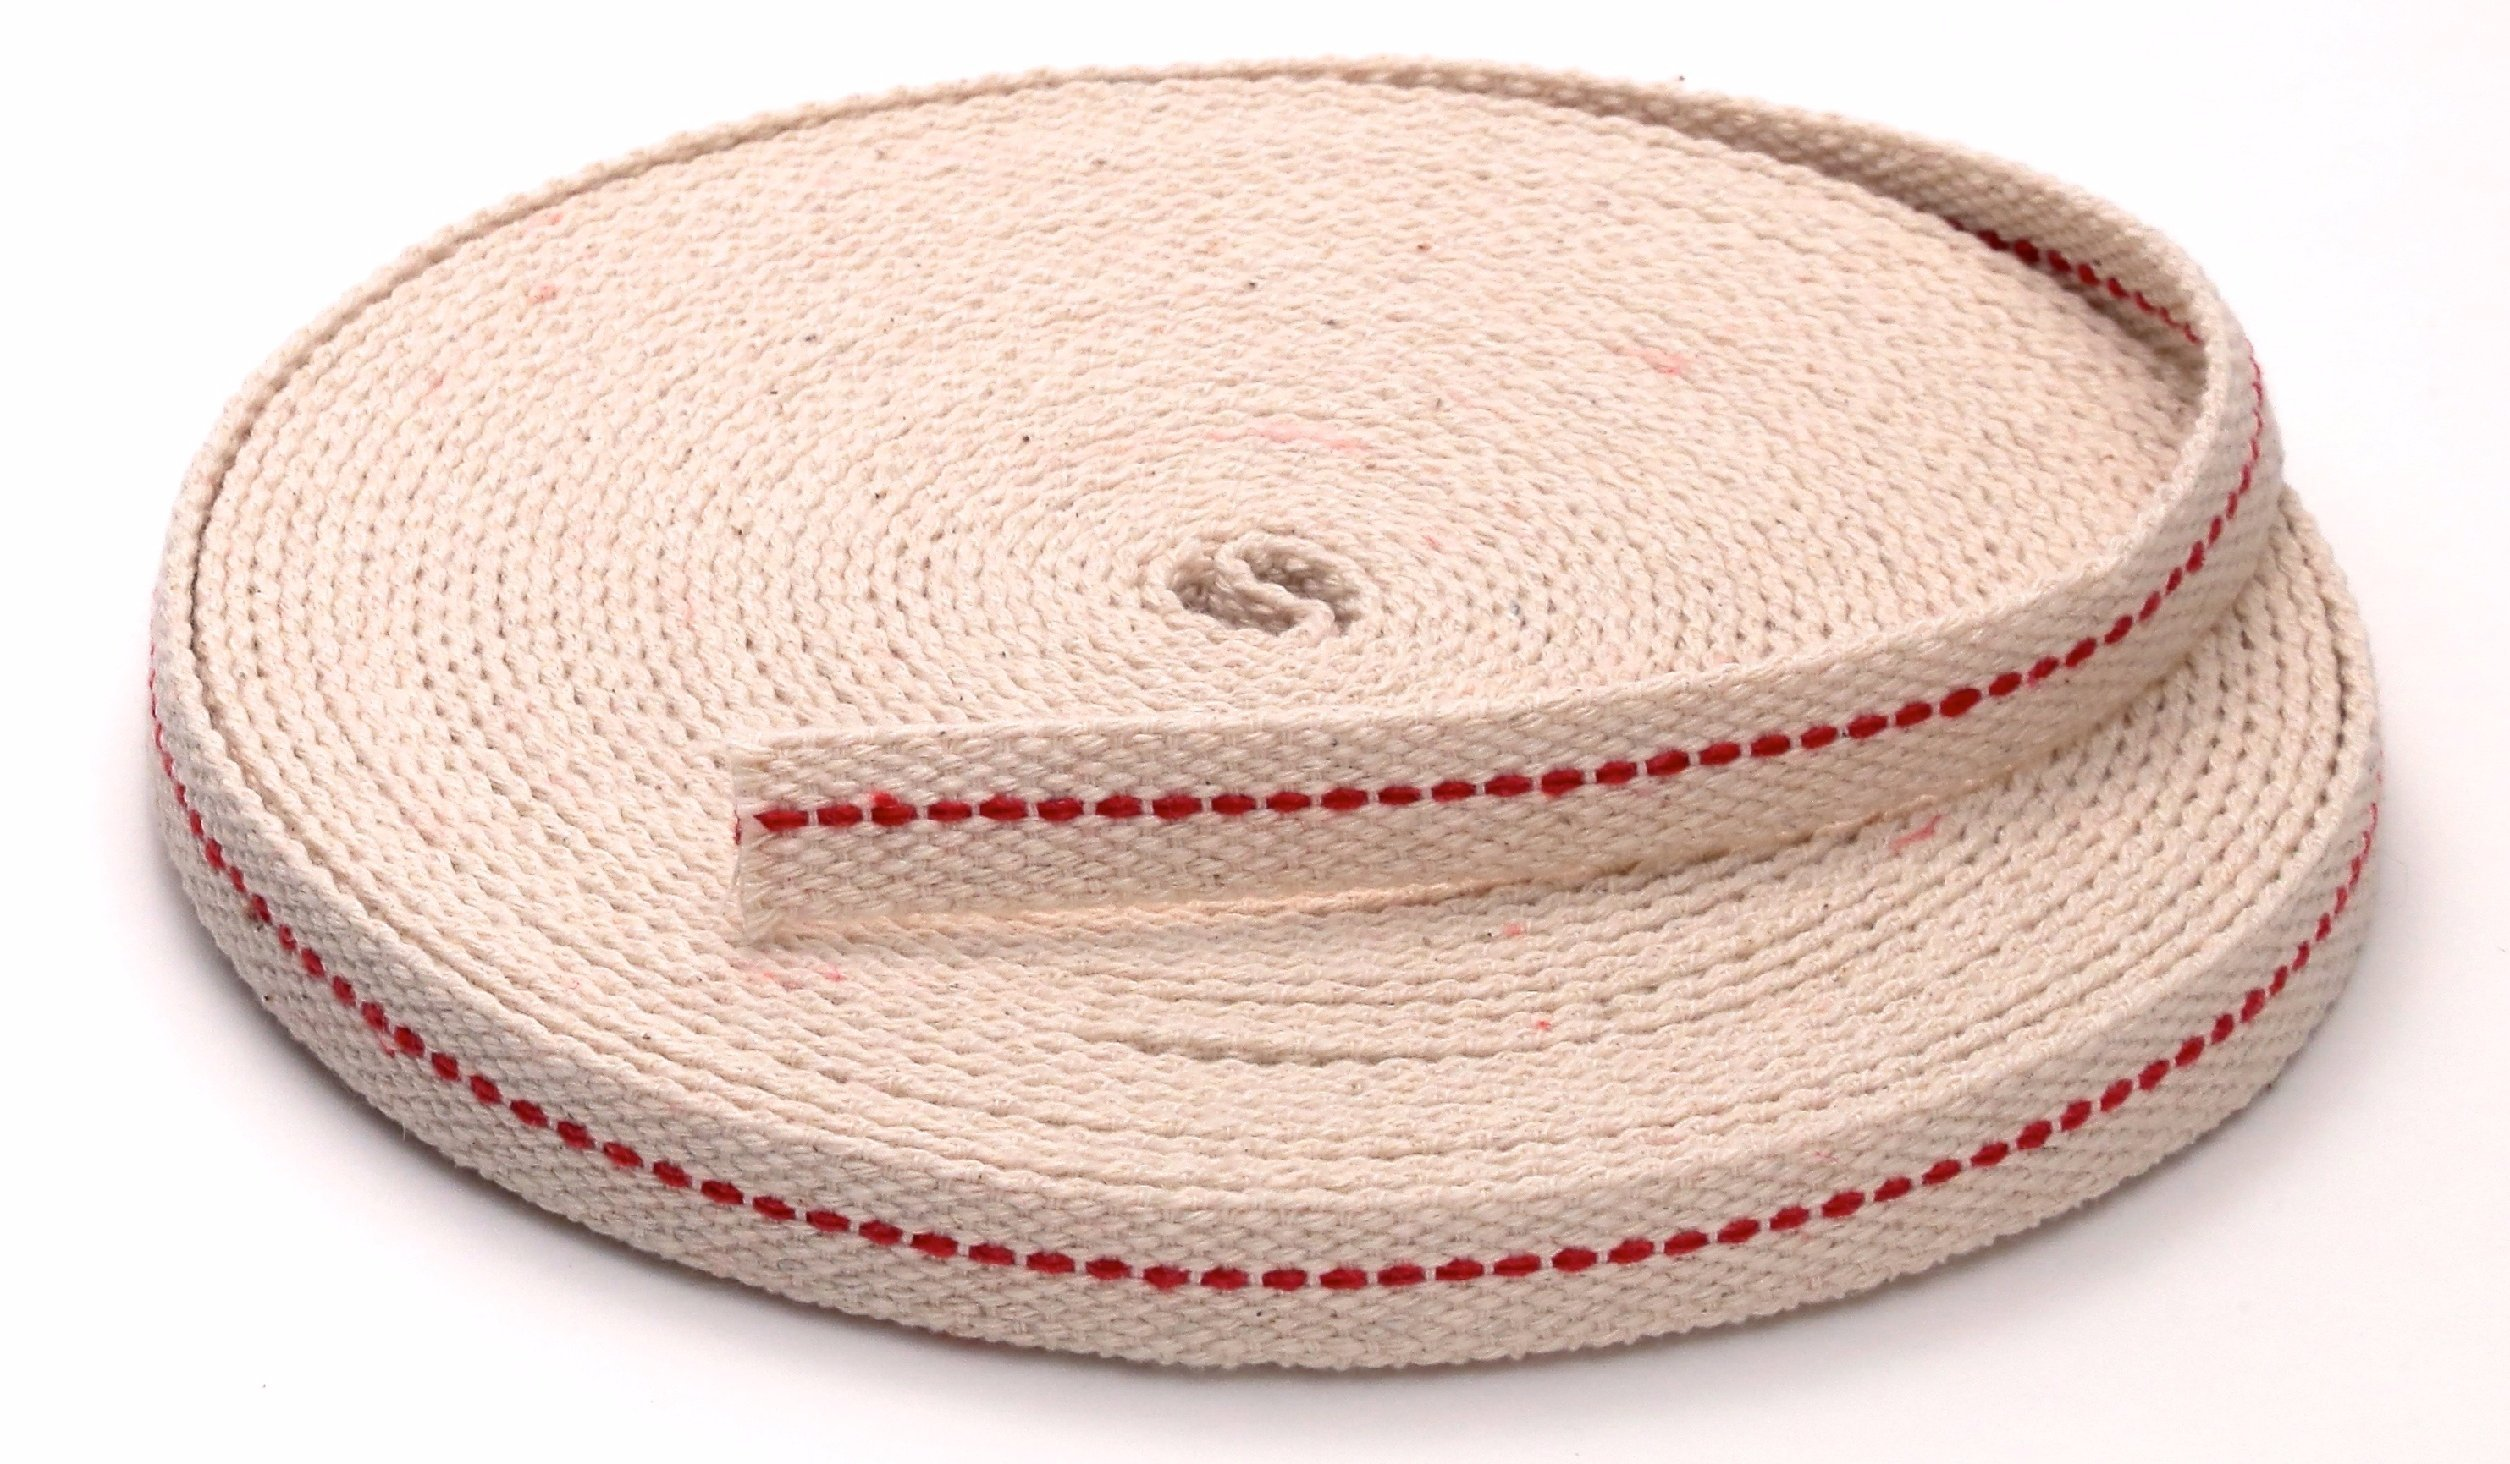 Light Of Mine 1/2'' Inch 100% Cotton Flat Wick 33 Foot Roll for Paraffin Oil or Kerosene Based Lanterns and Oil Lamps with Genuine Red Stitch Superior Quality (1/2'')